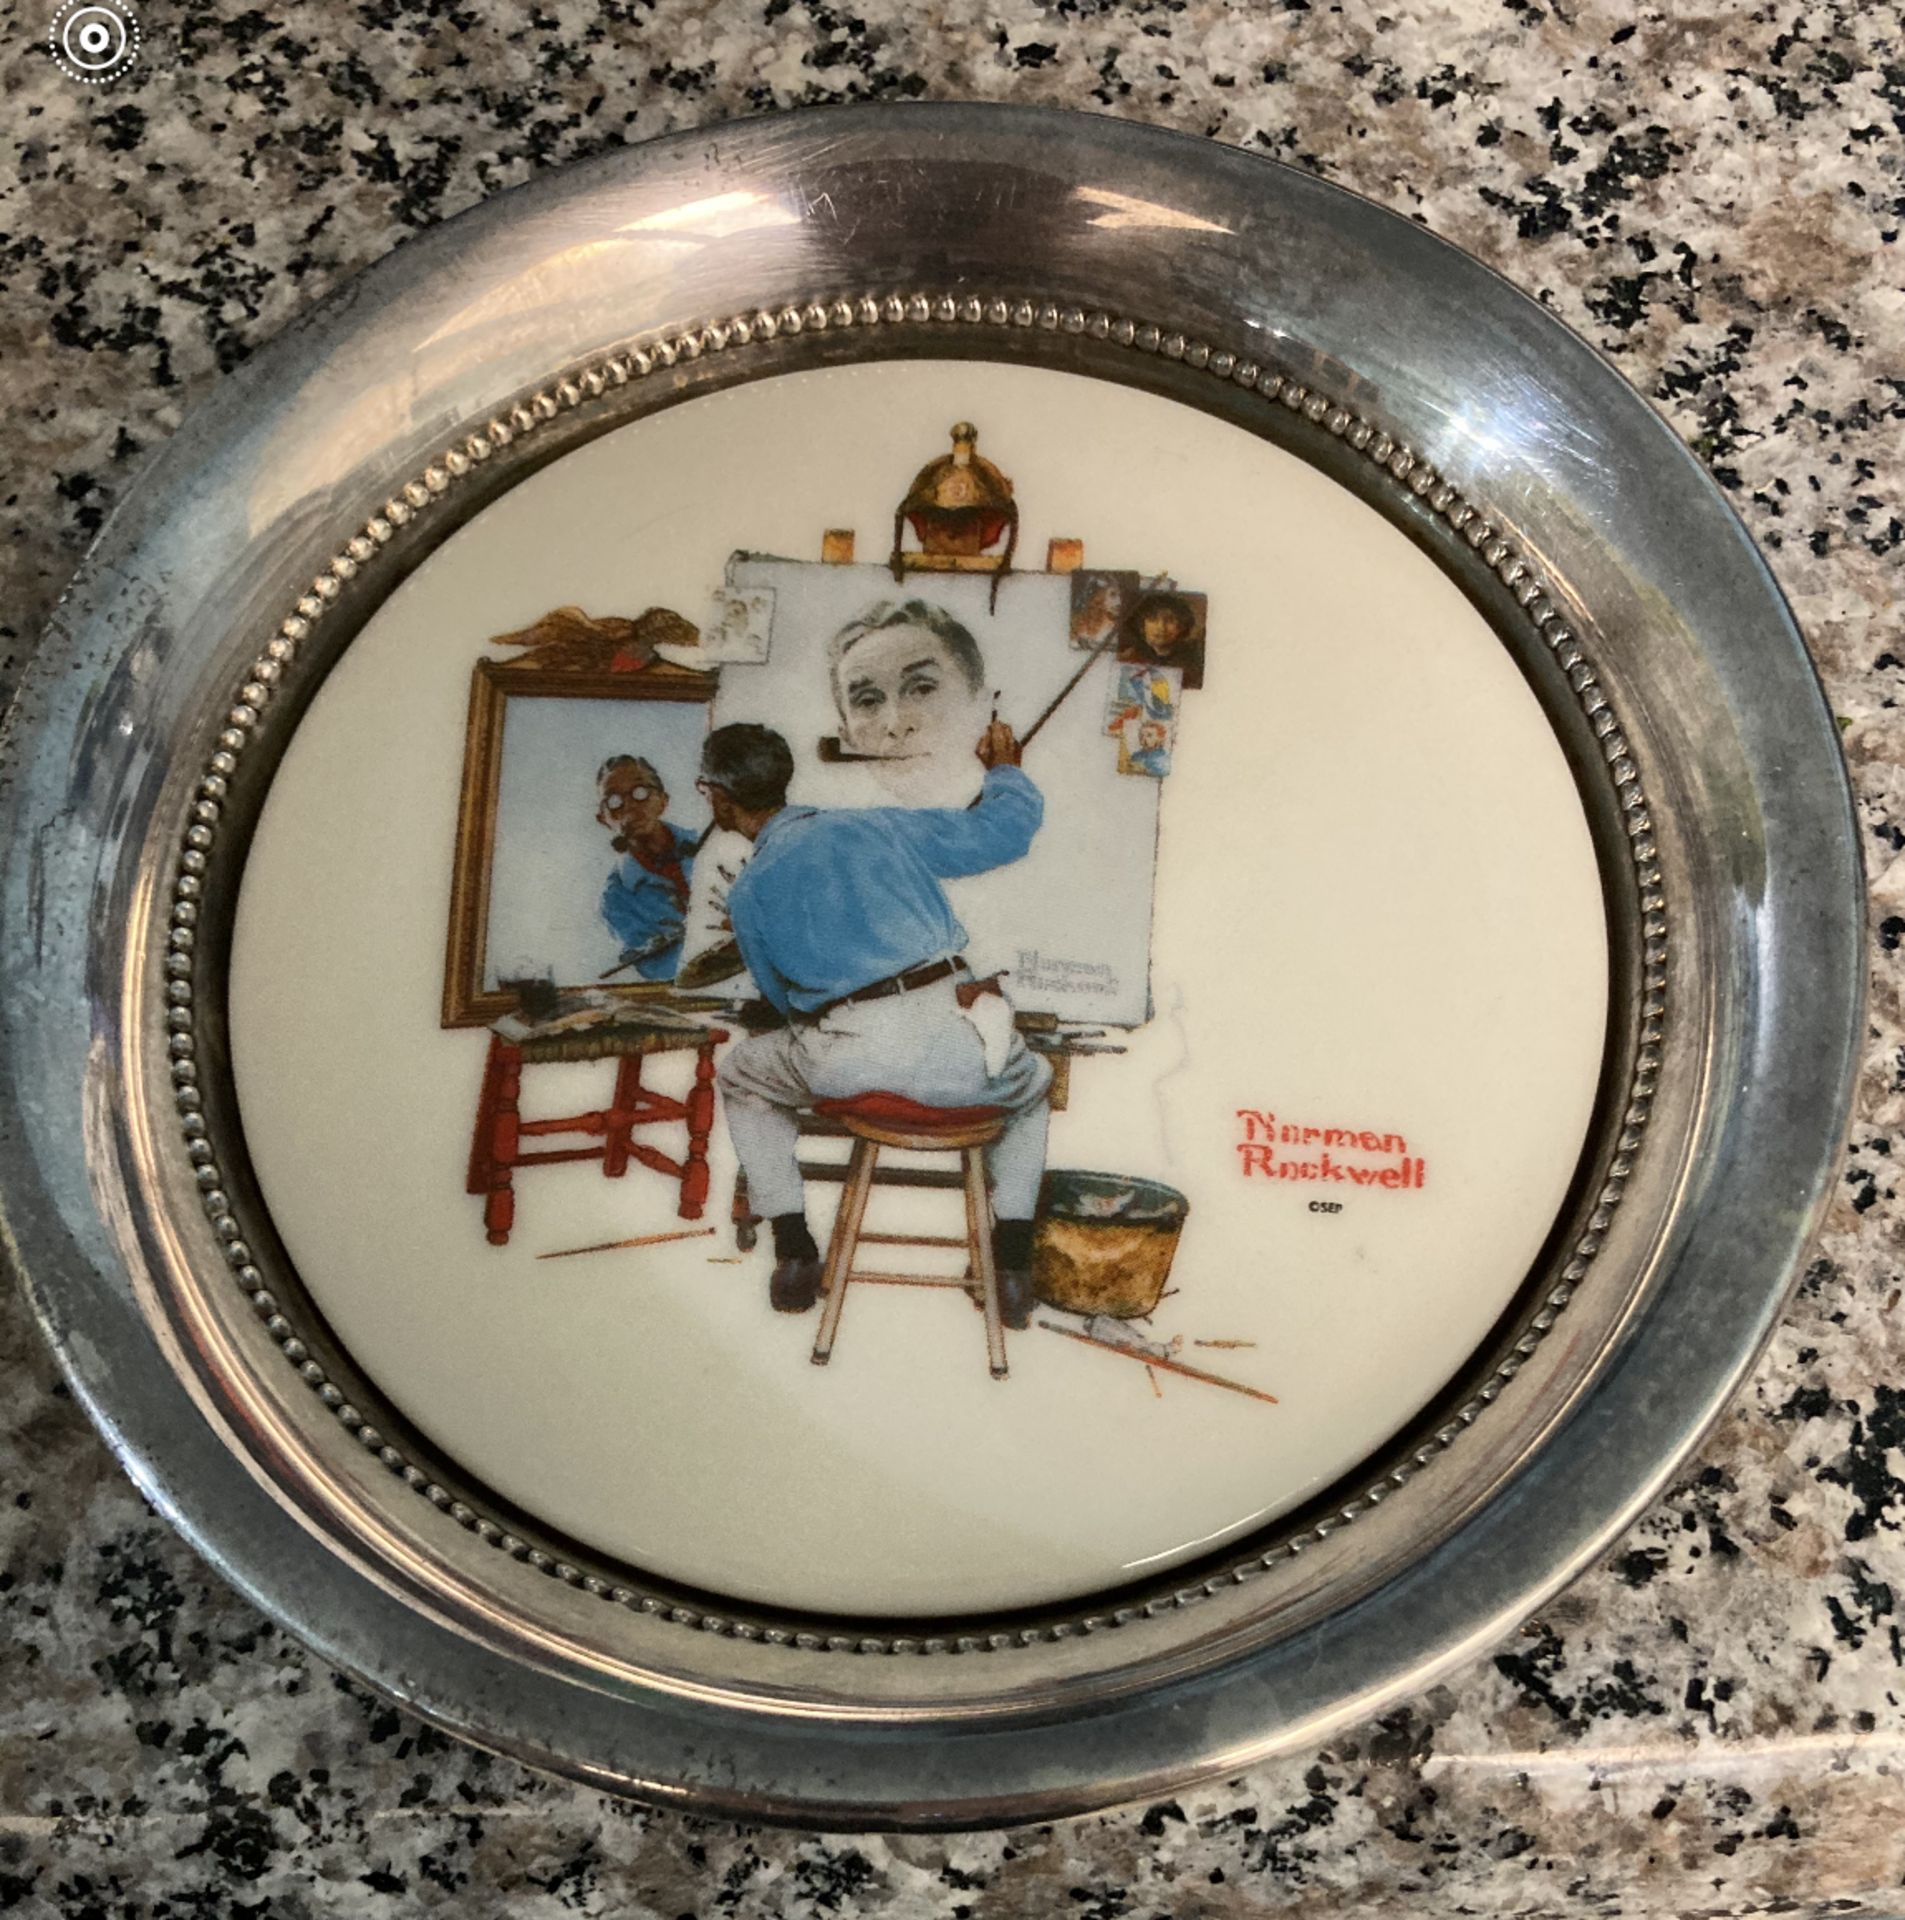 Norman Rockwell Plate in Silver (possibly plated) - Corham Collectors Society, First Edition, GCS 1